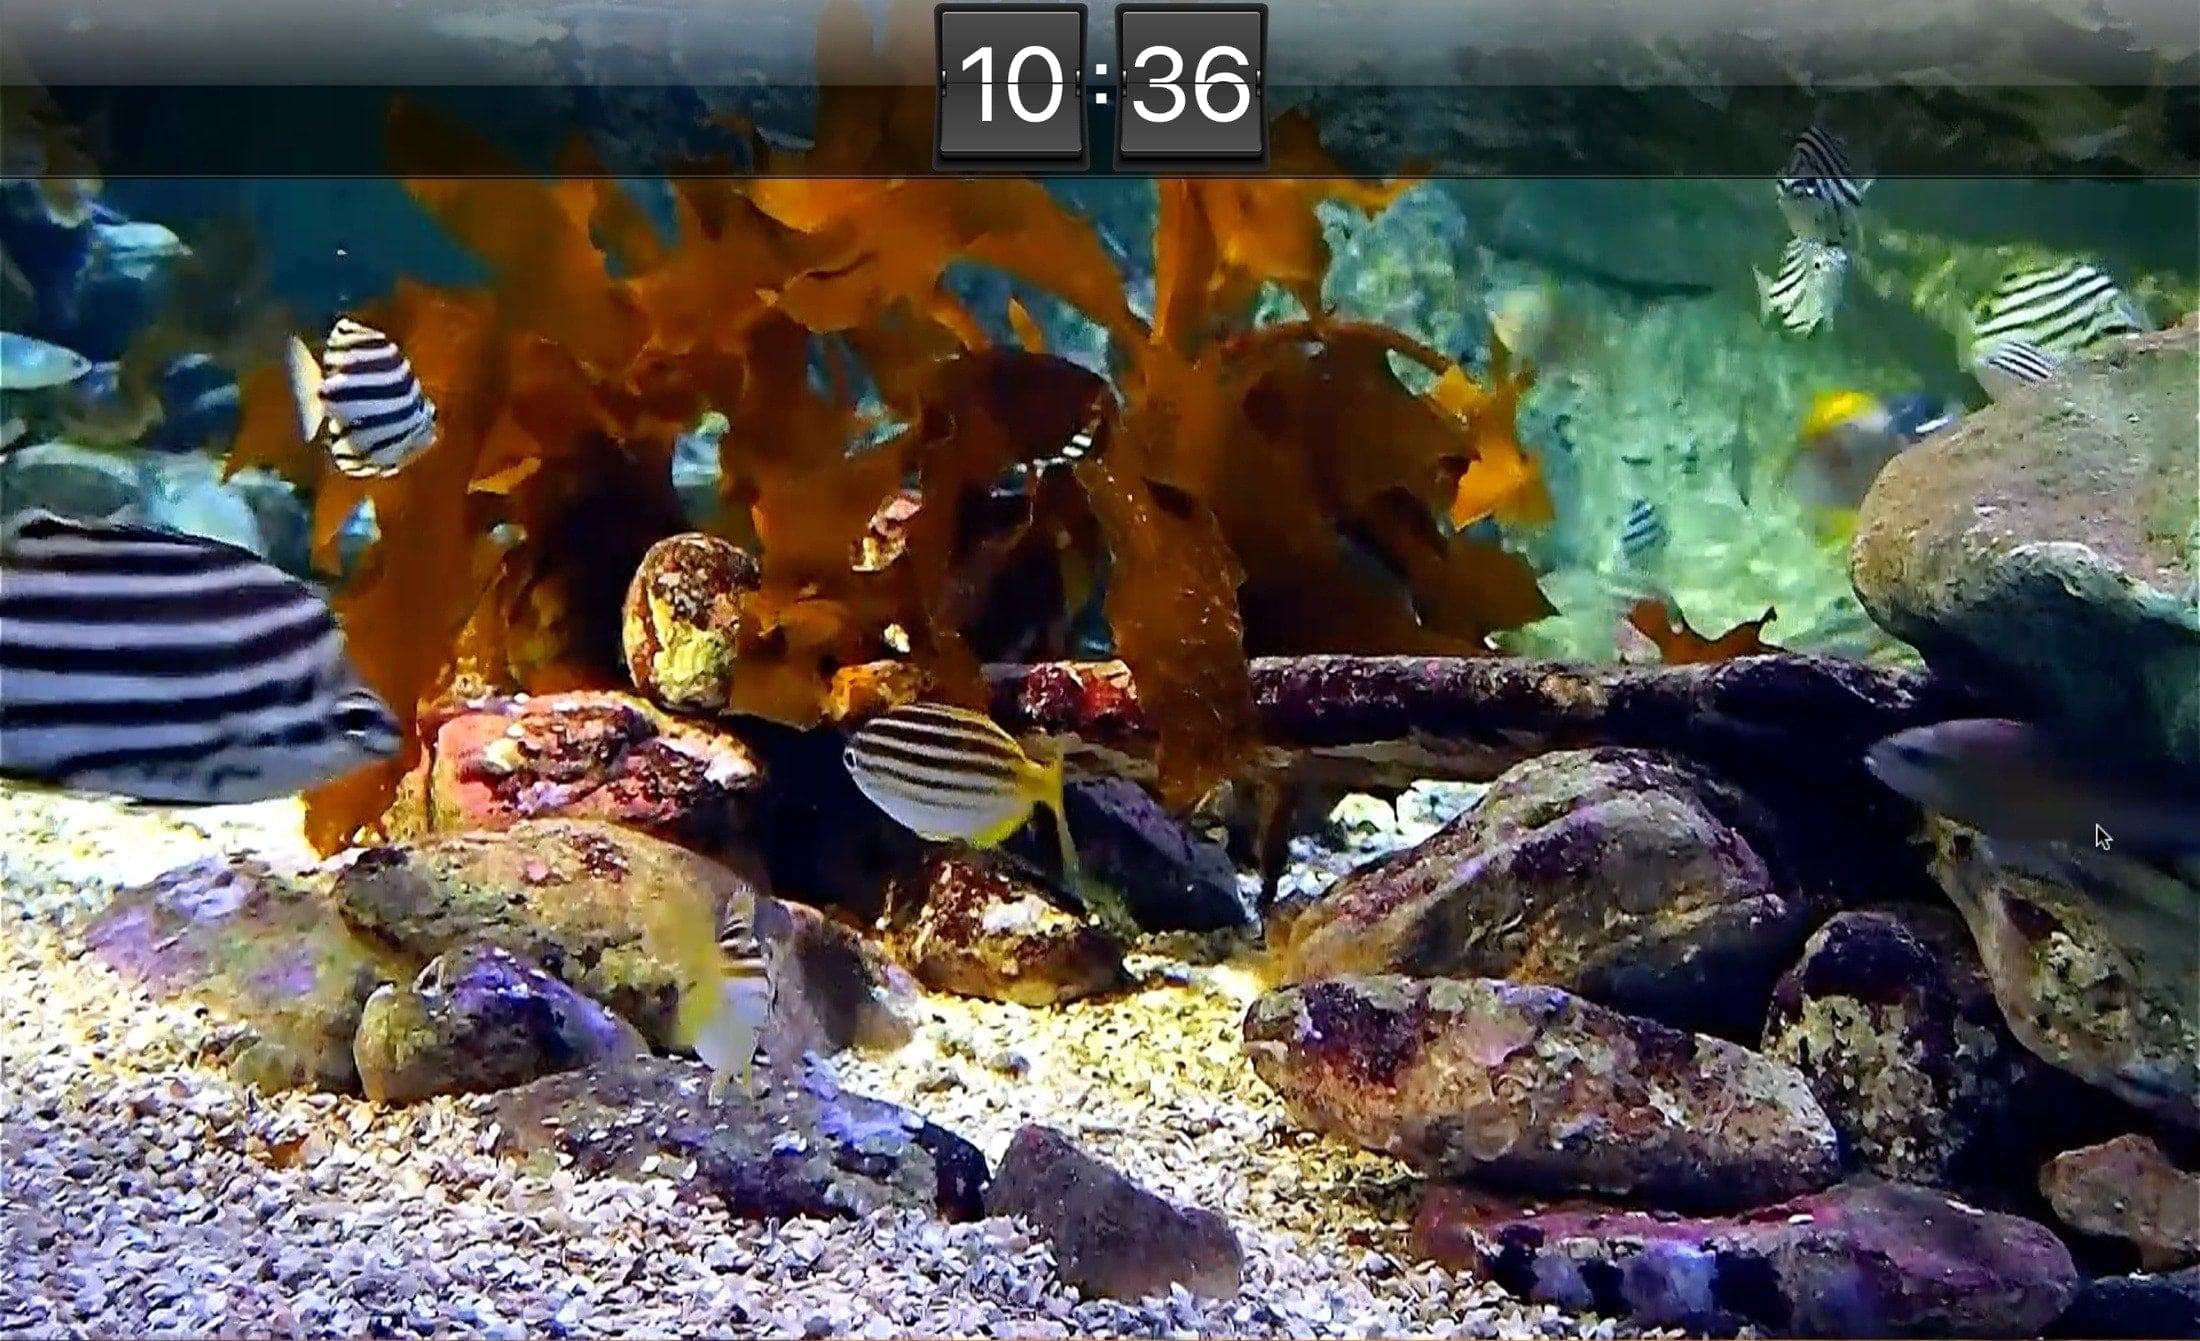 Aquarium Live HD Screensaver Mac